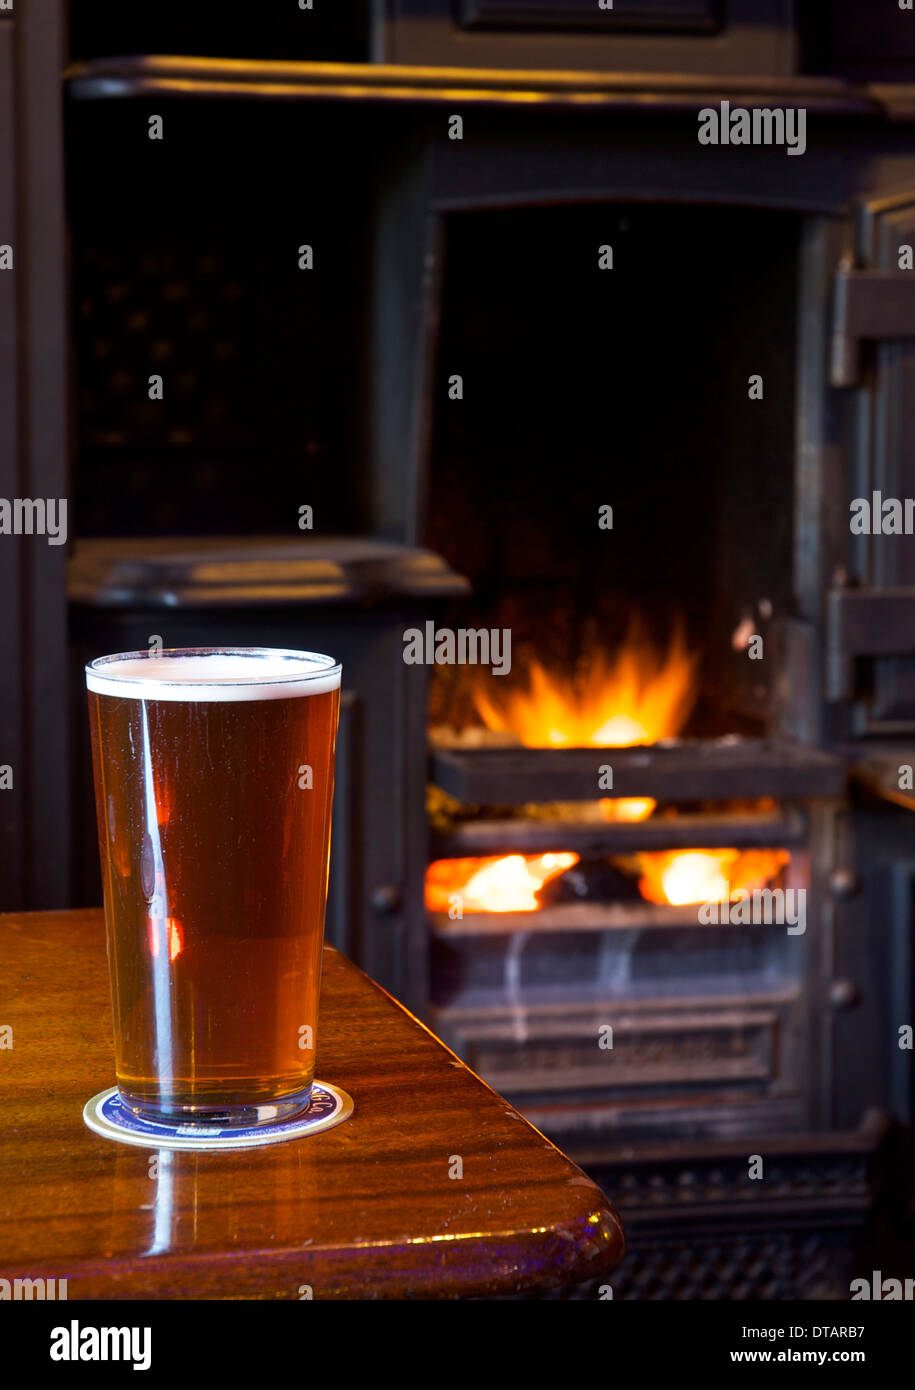 A pint of bitter on a pub table, with open fire in the background - Stock Image